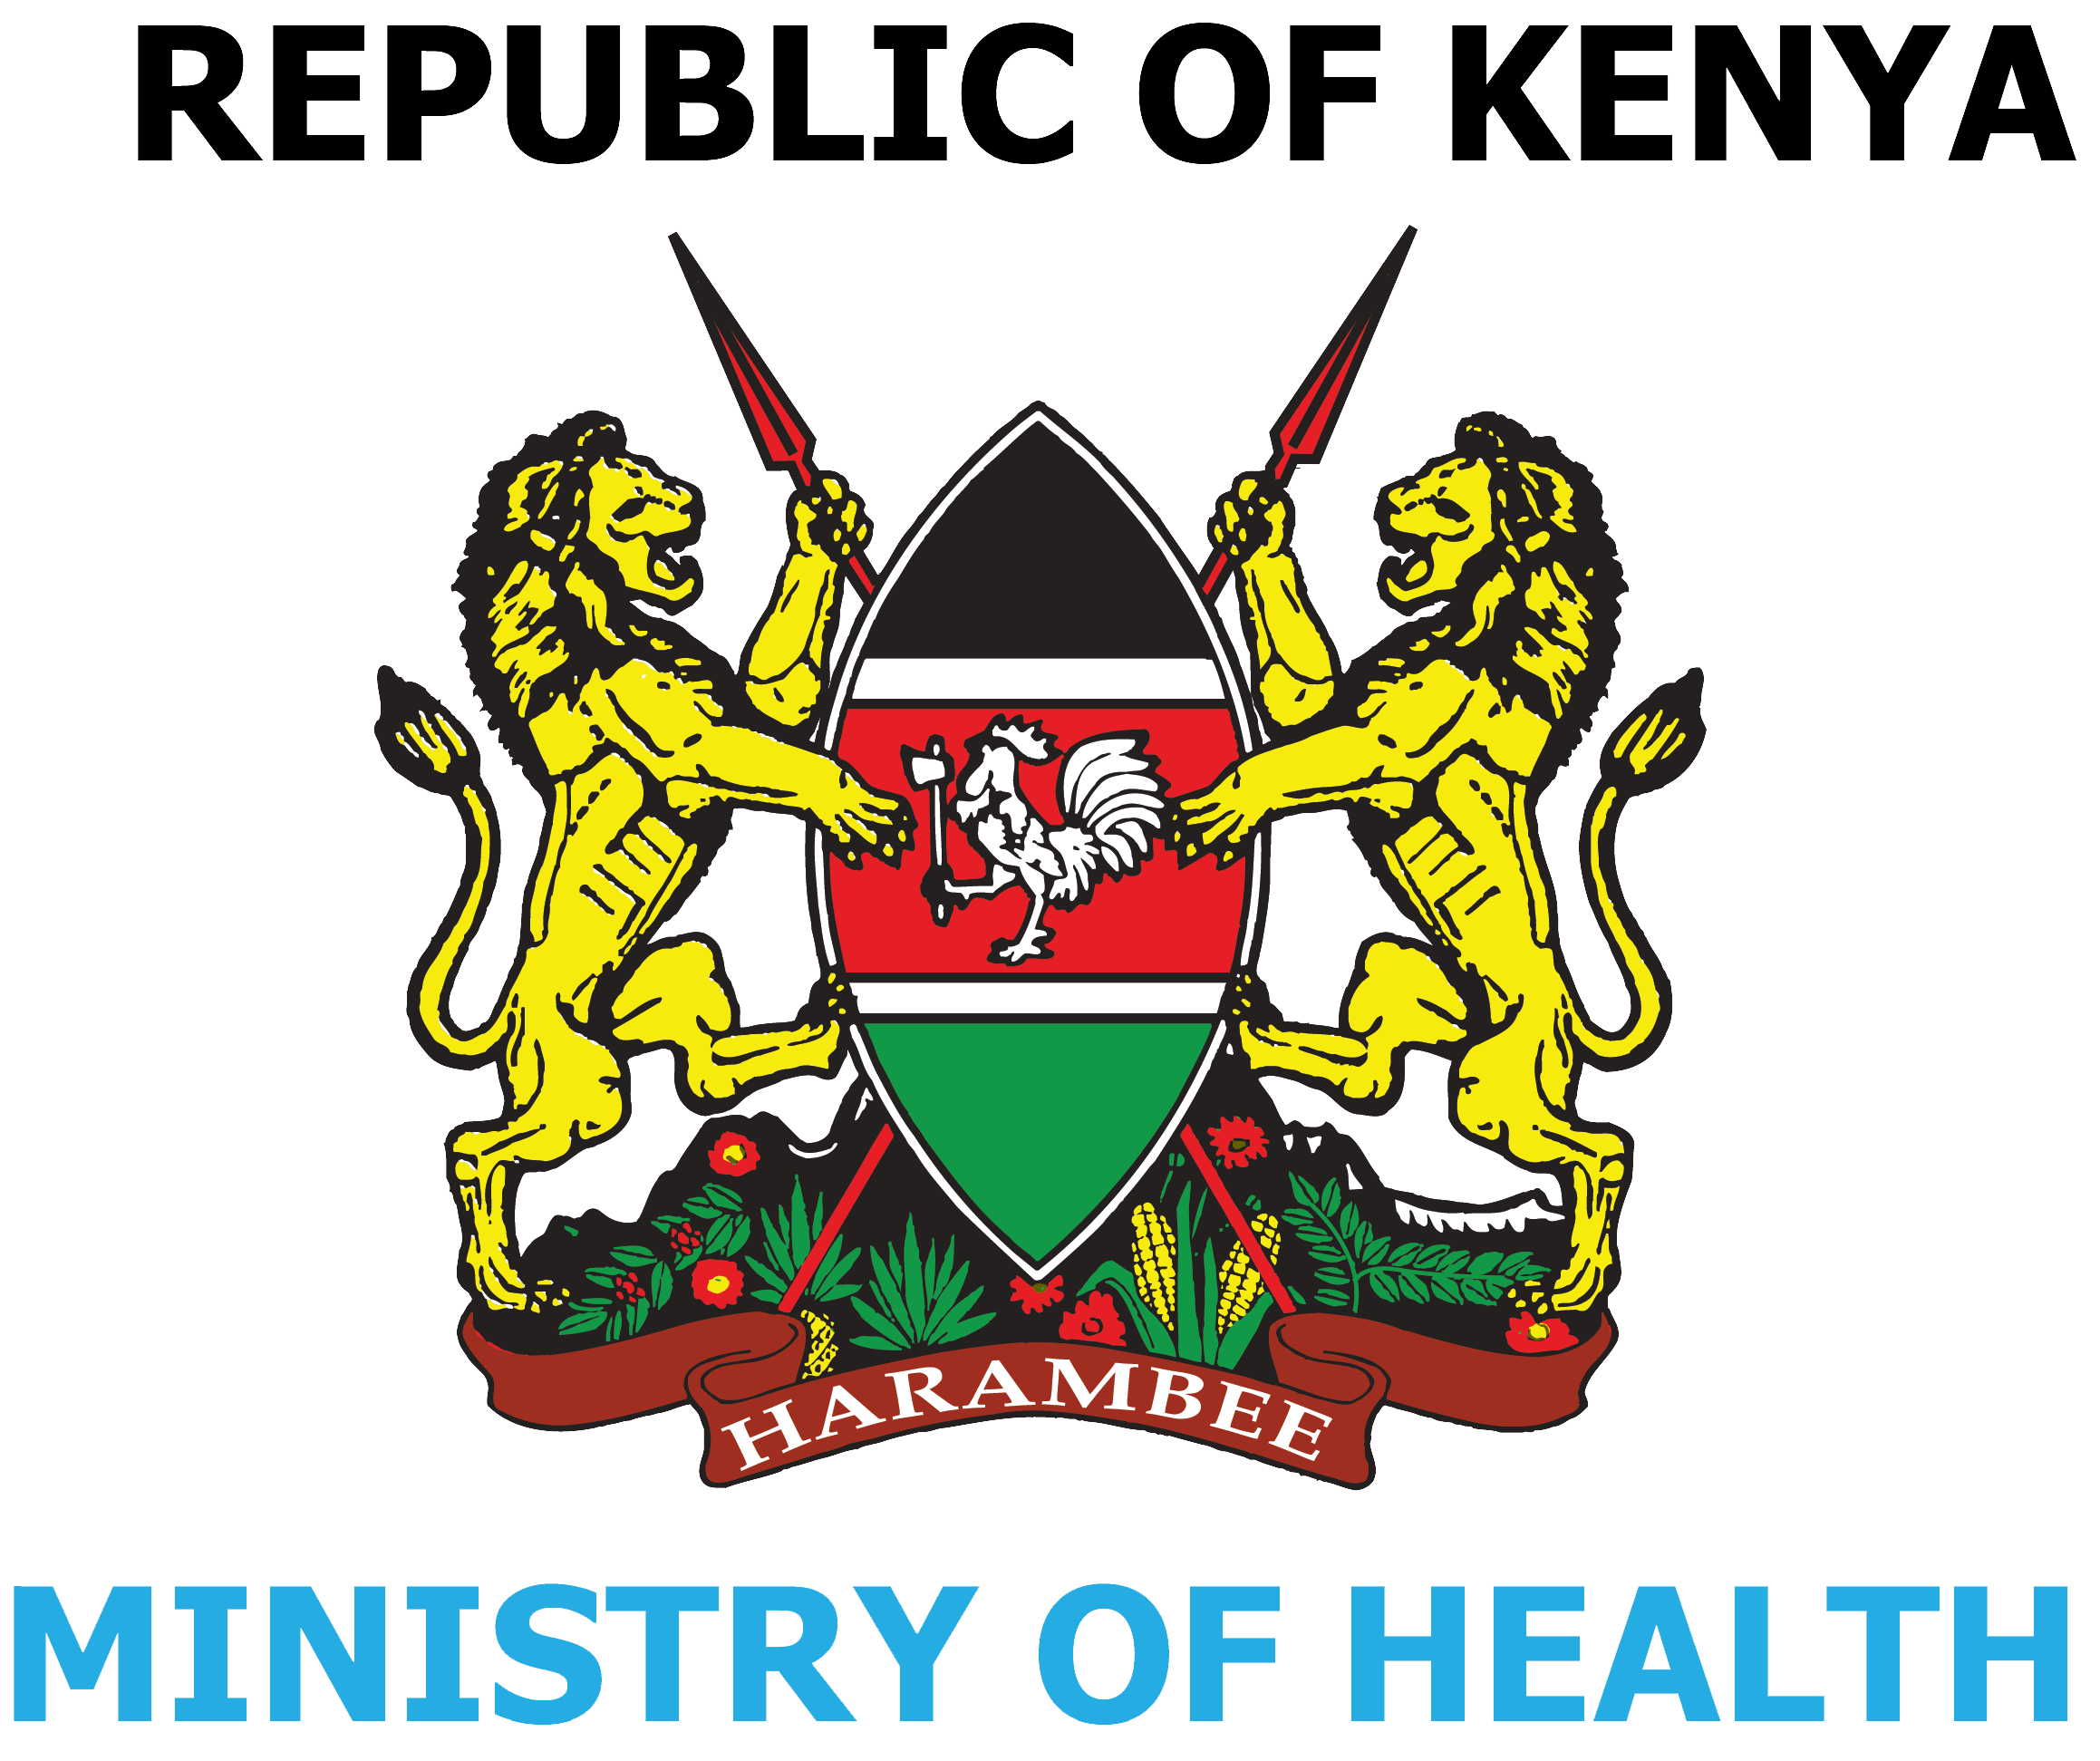 Kenya MOH logo a partner of CMMB